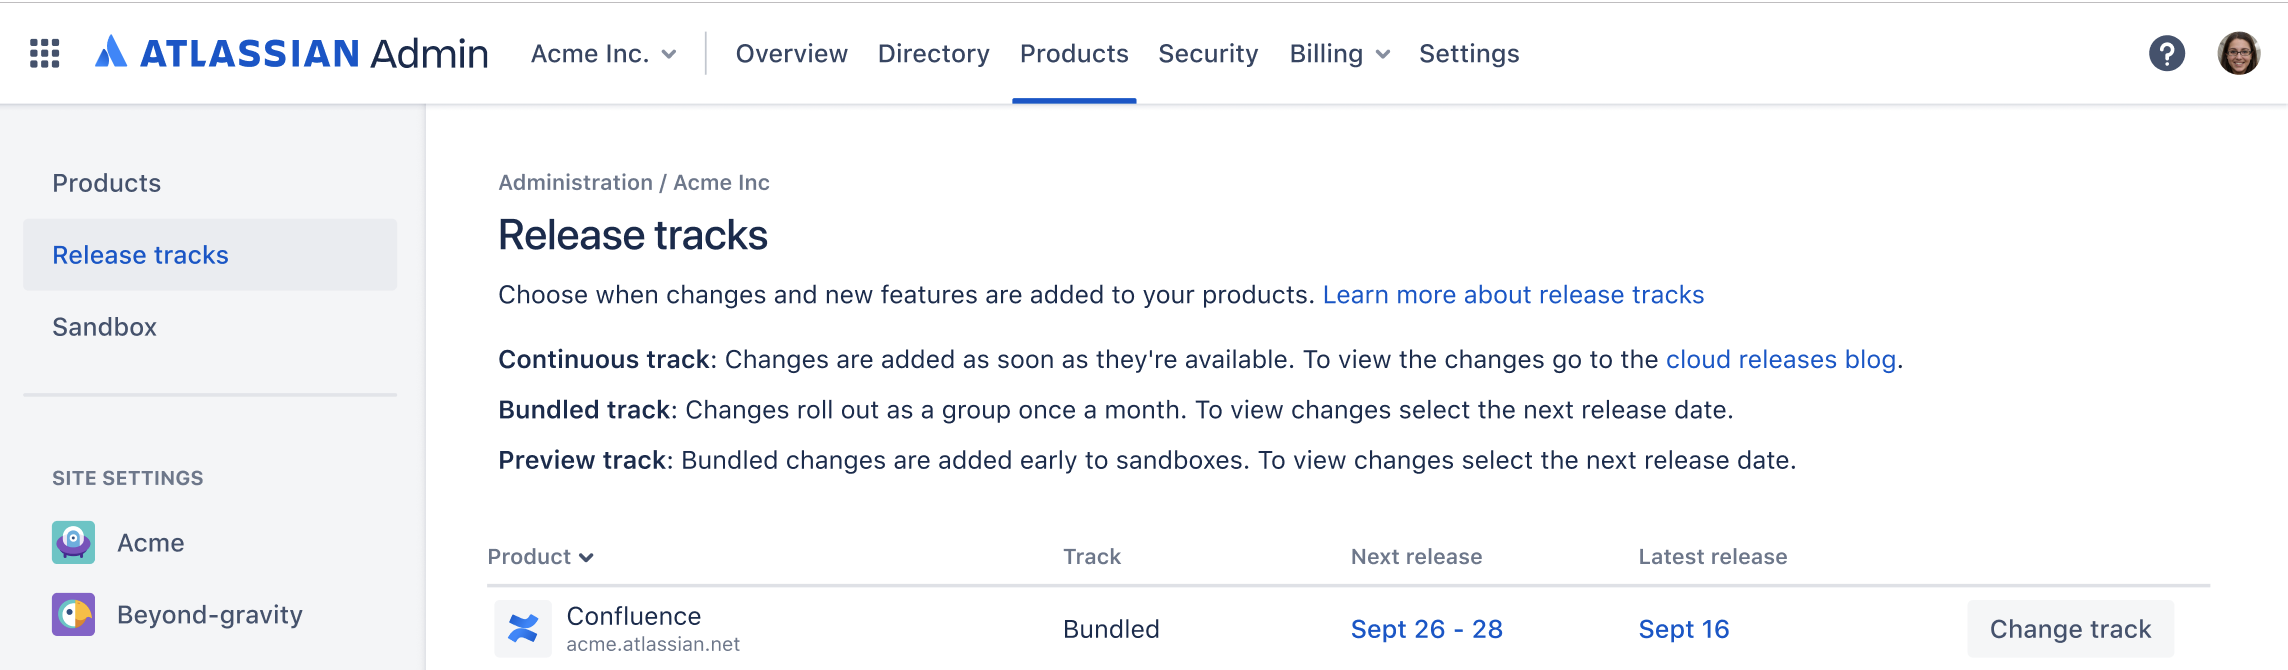 Release tracks page, under the Products menu on the top admin navigation